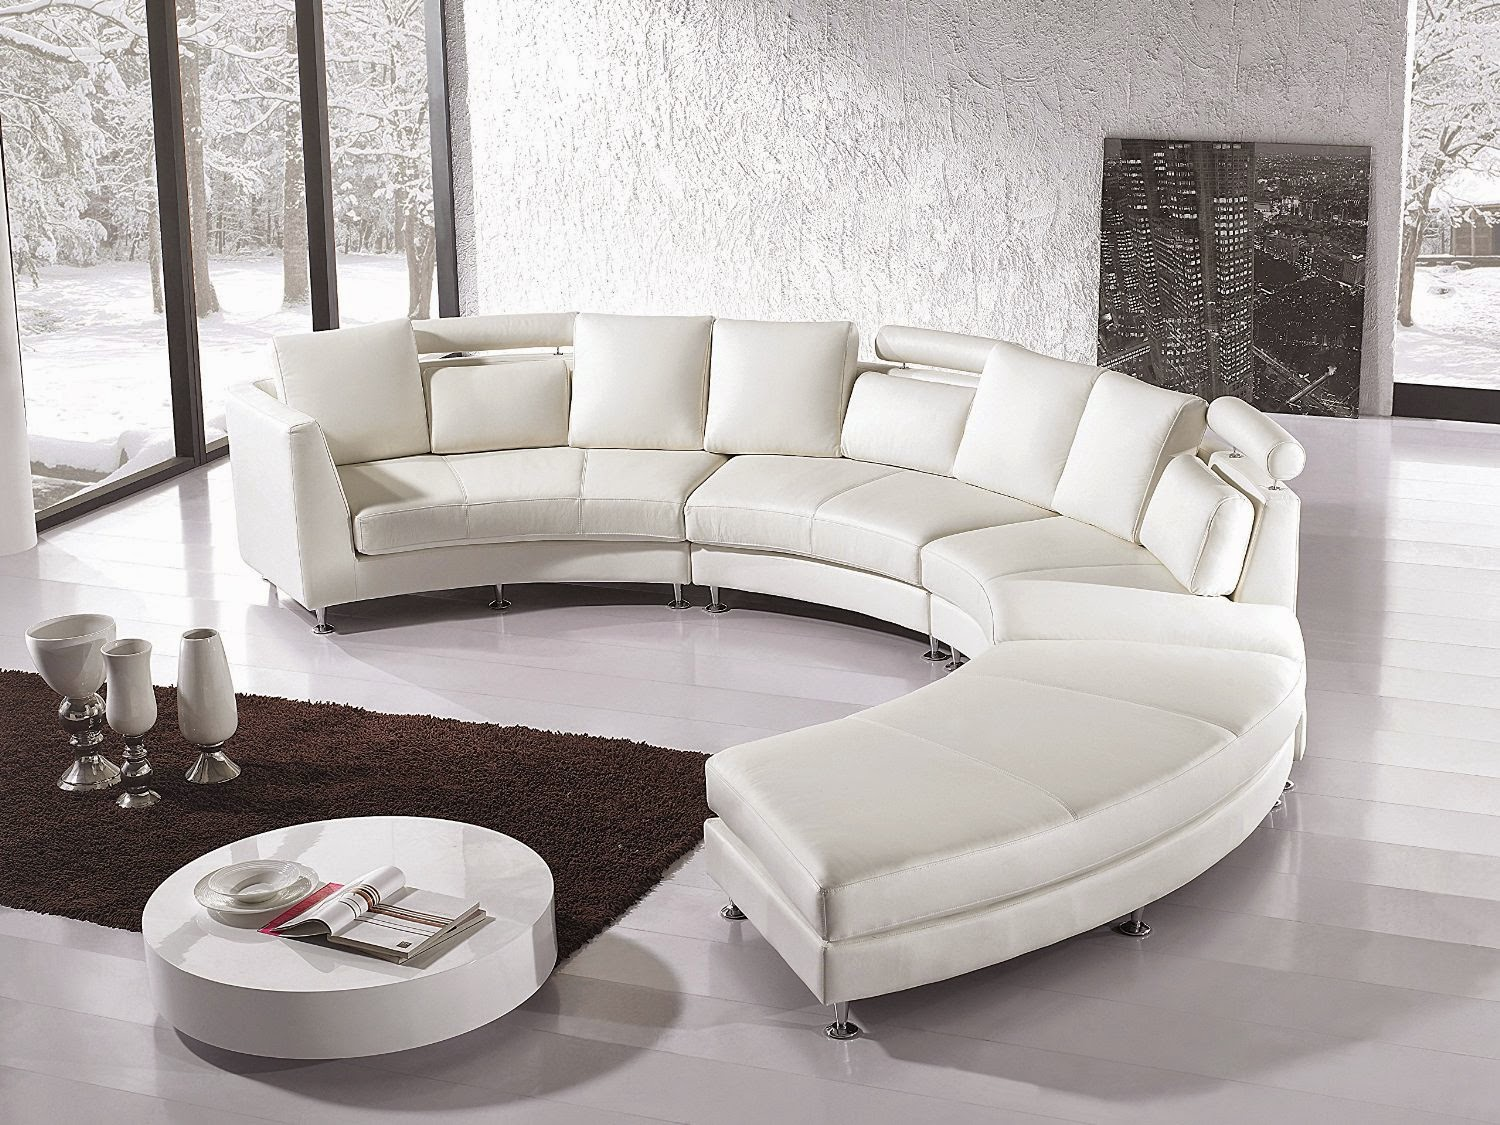 Curved Sofas And Loveseats Reviews: Curved Sofa Leather